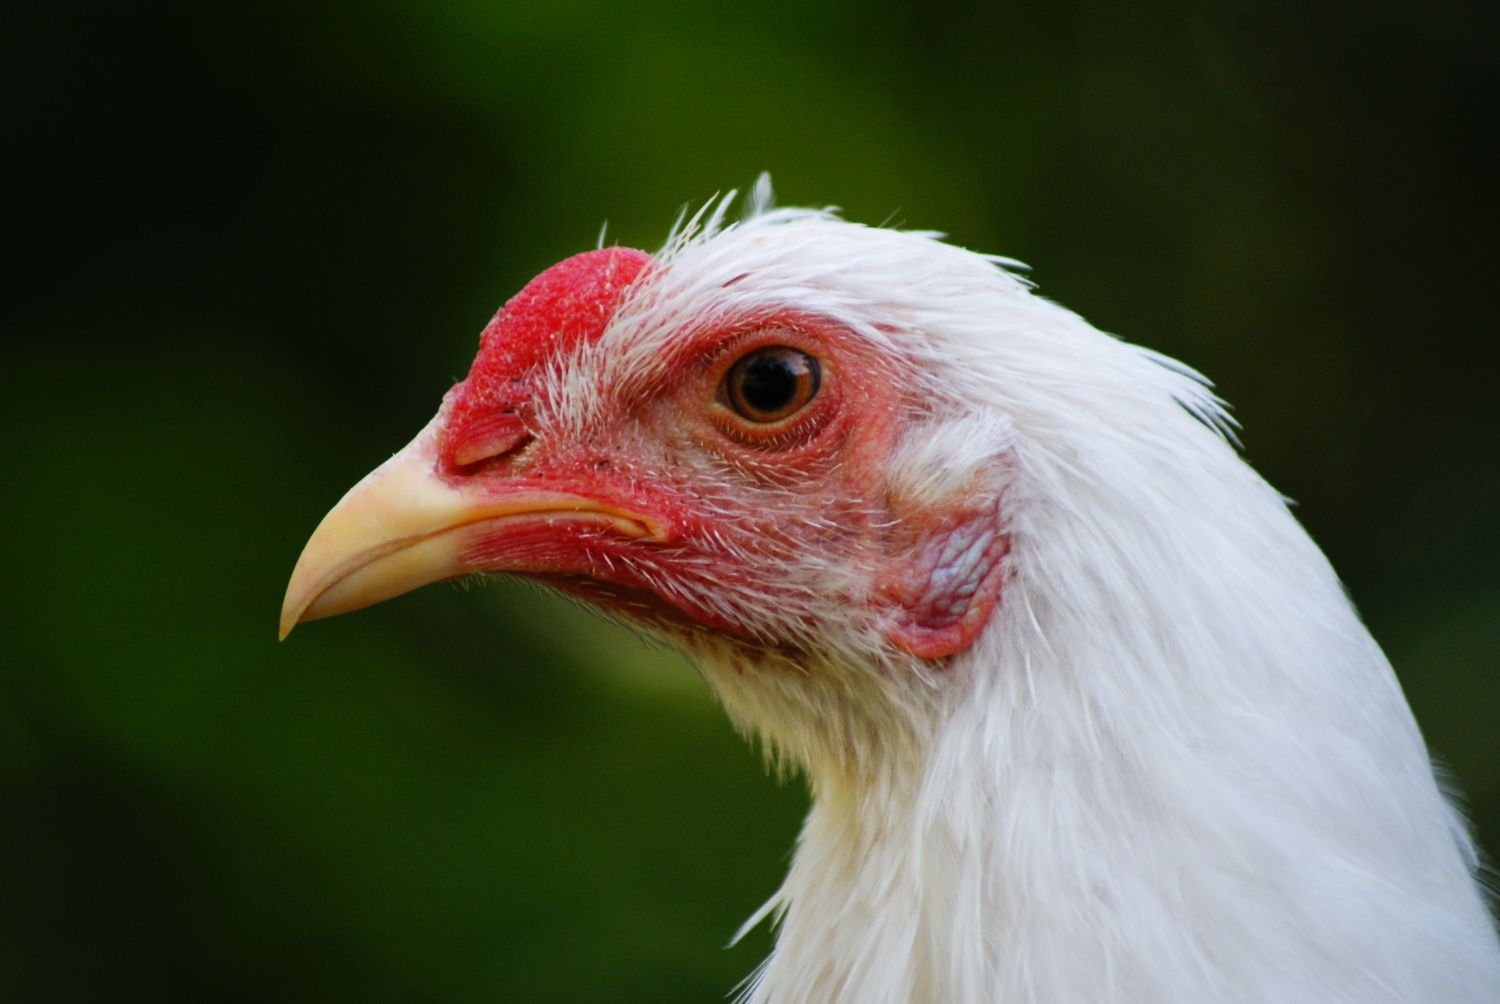 cluckcluckluke's photos in Comb Contest 2014 - Walnut